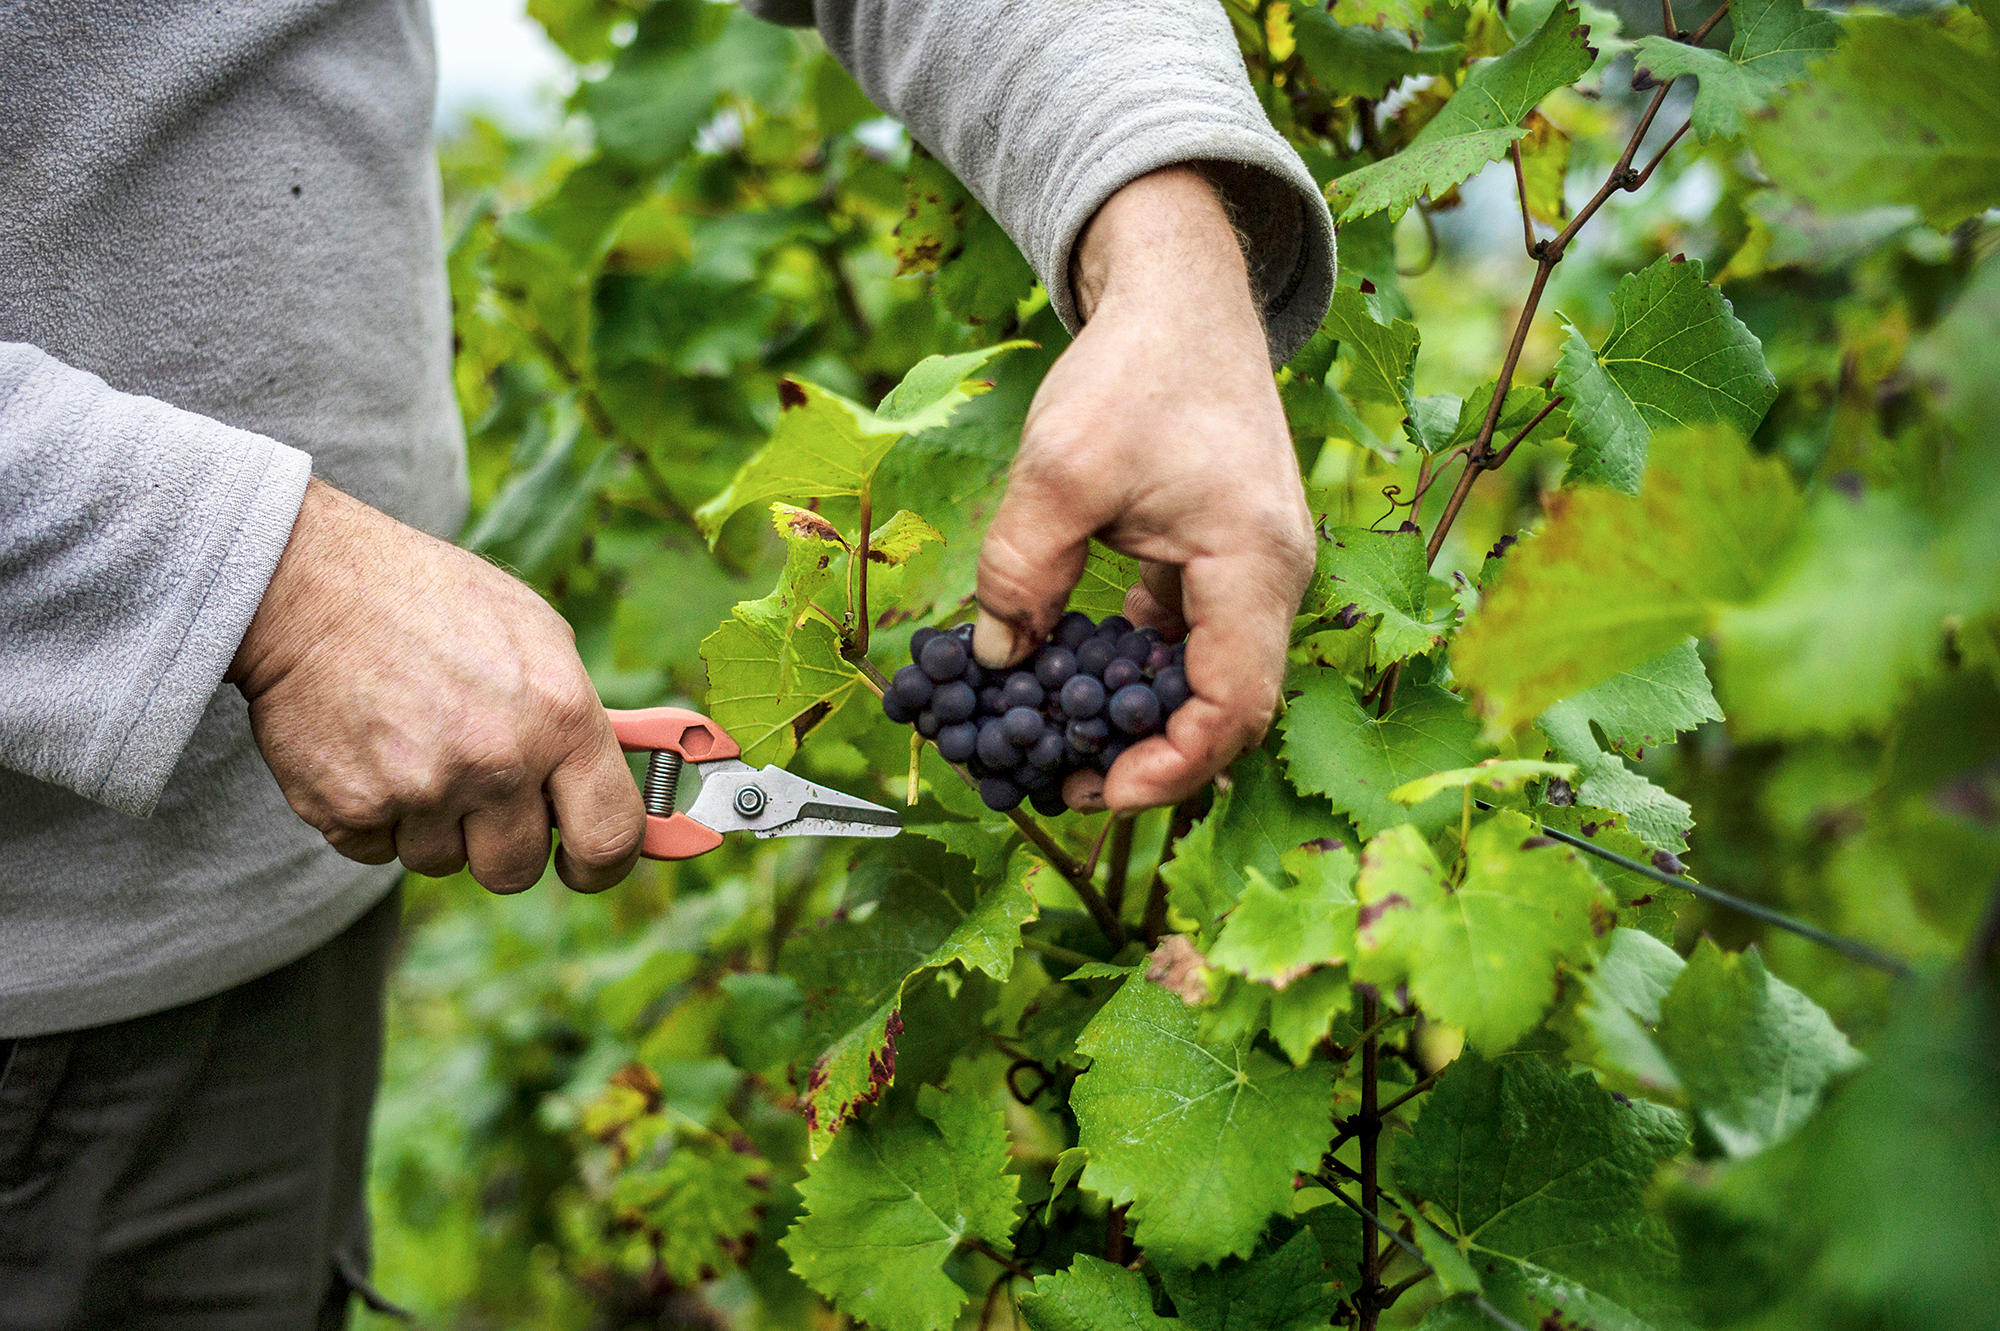 An upside to climate change better french wine kuow news and information - The splendid transformation of a vineyard in burgundy ...